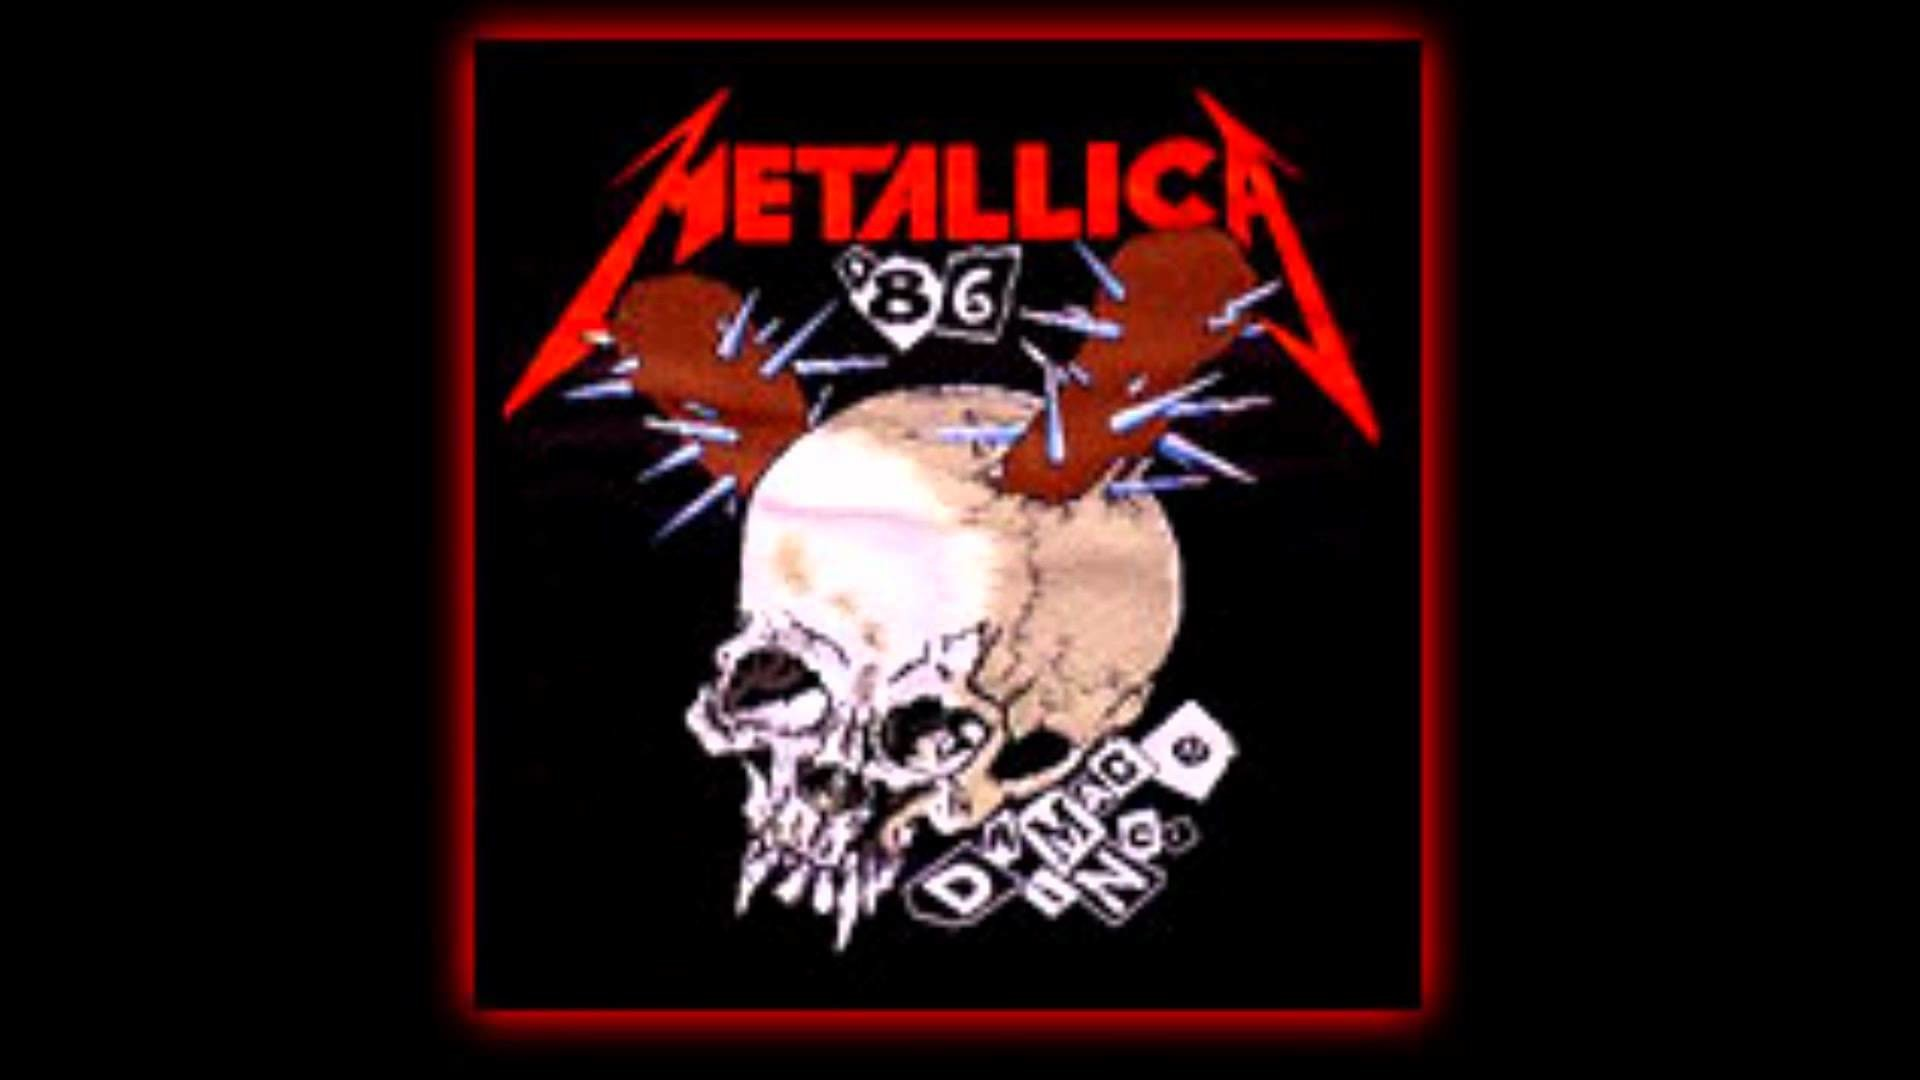 1920x1080 Metallica Live Donington 1985 Creeping Death And Ride the Lightning HD 1080p